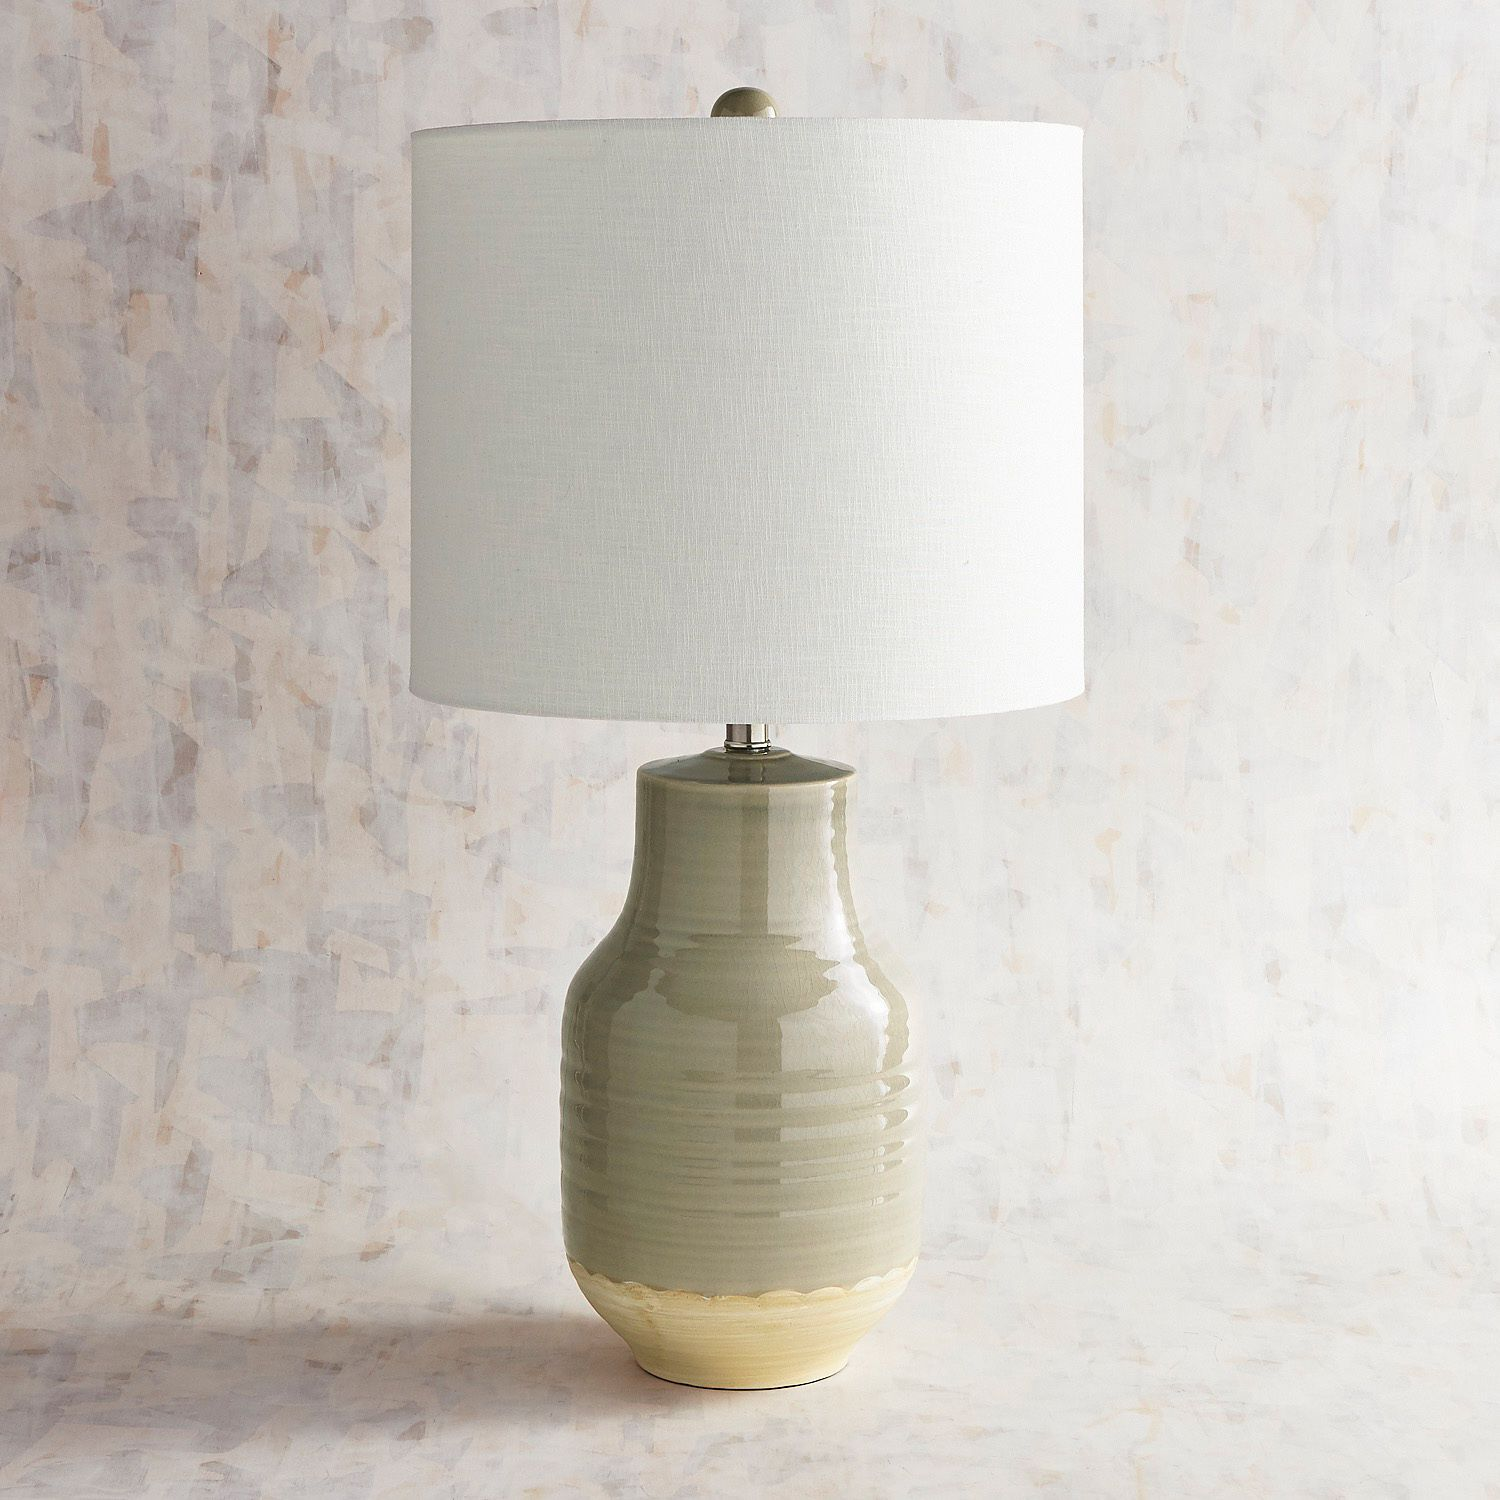 farmhouse ceramic table lamp pier imports one accent lamps cordless for living room garden umbrella that use batteries round glass and wood coffee dale tiffany dragonfly marble